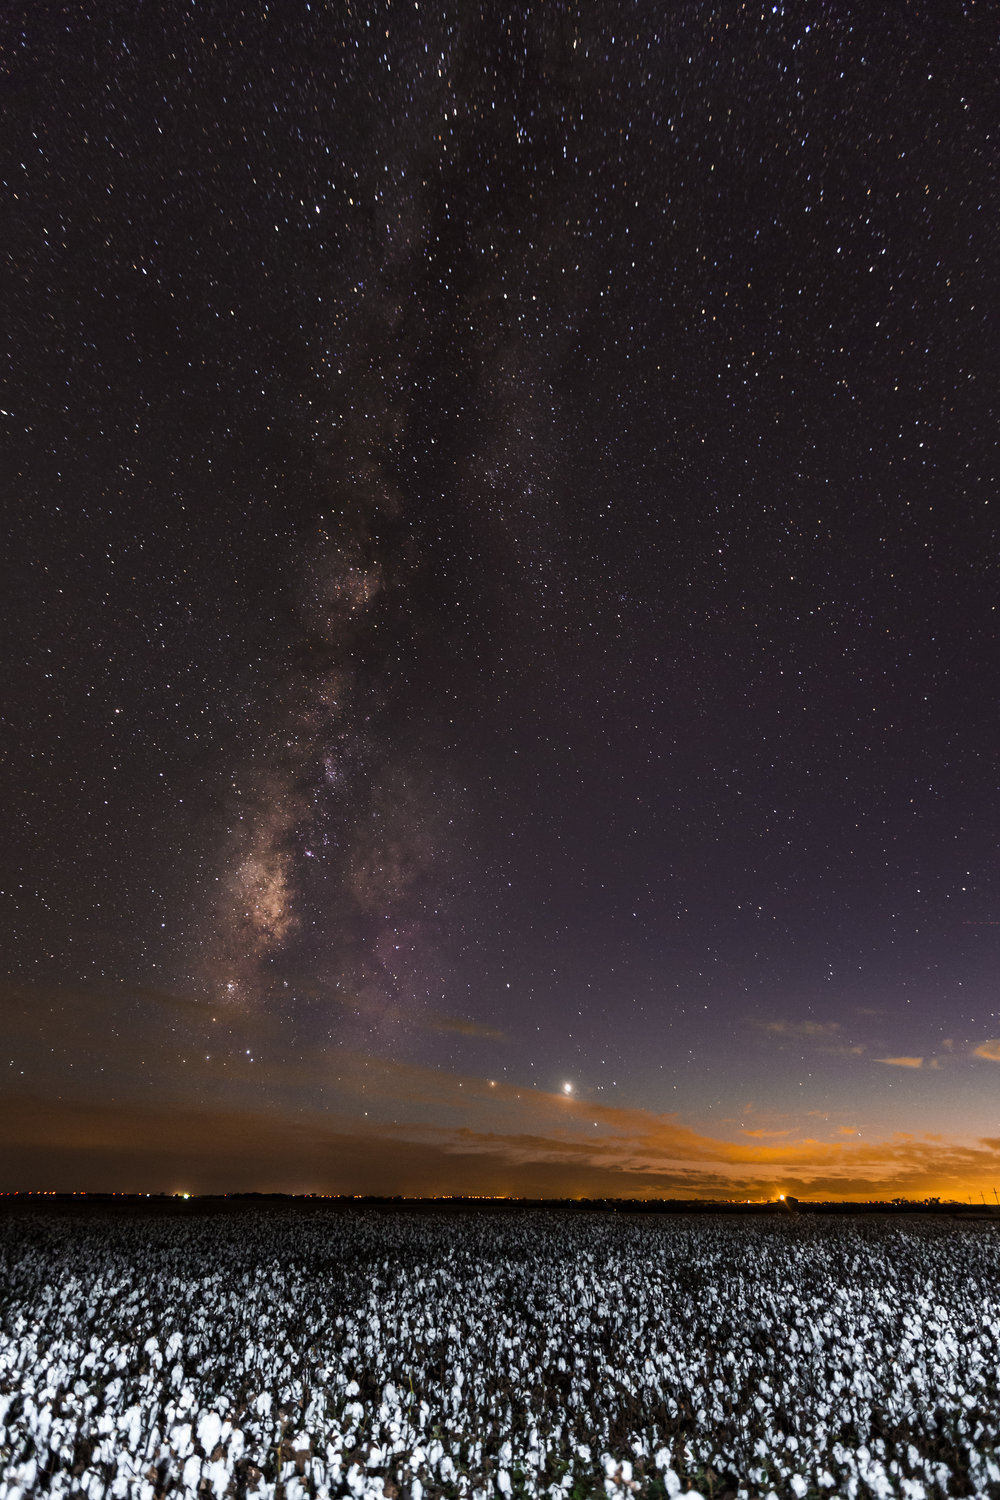 The Milky Way and sun setting over a cotton field outside of Colorado City, Tx.